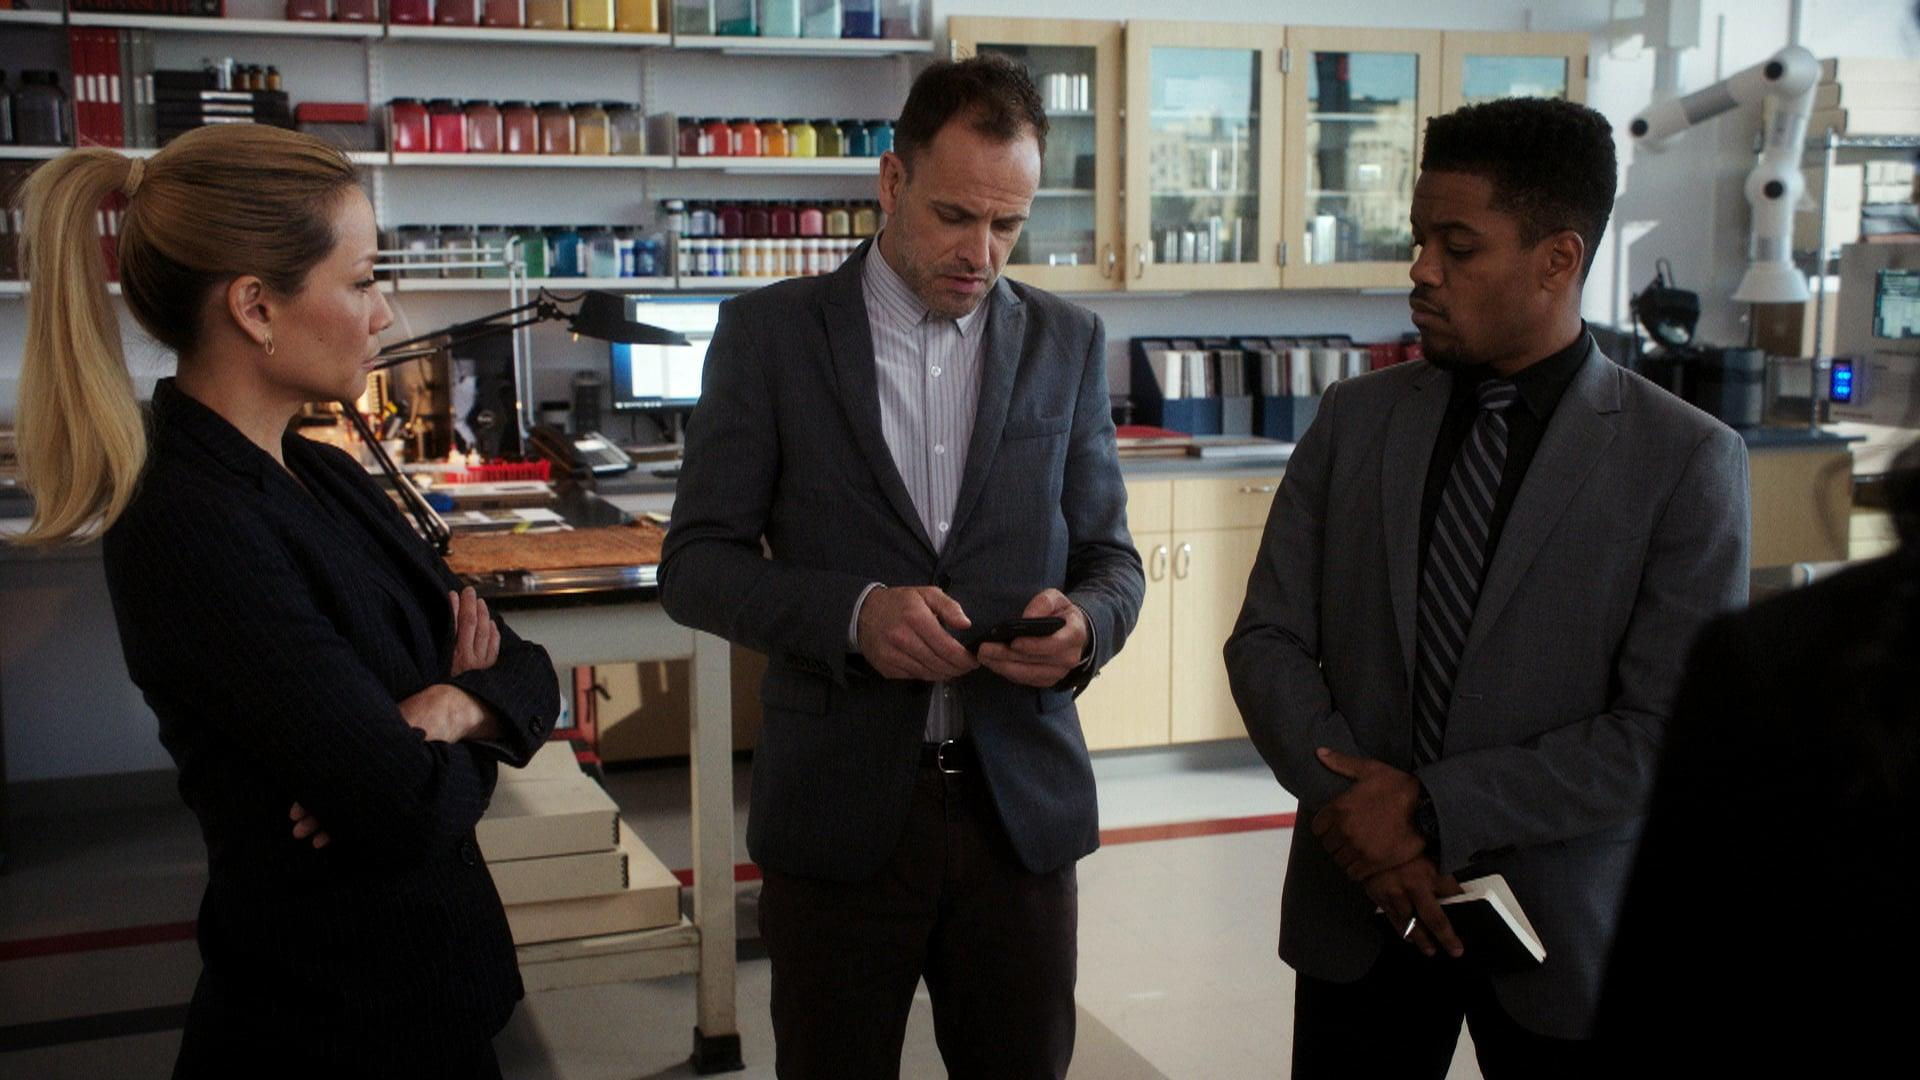 elementary  s07e07   from russia with drugs summary